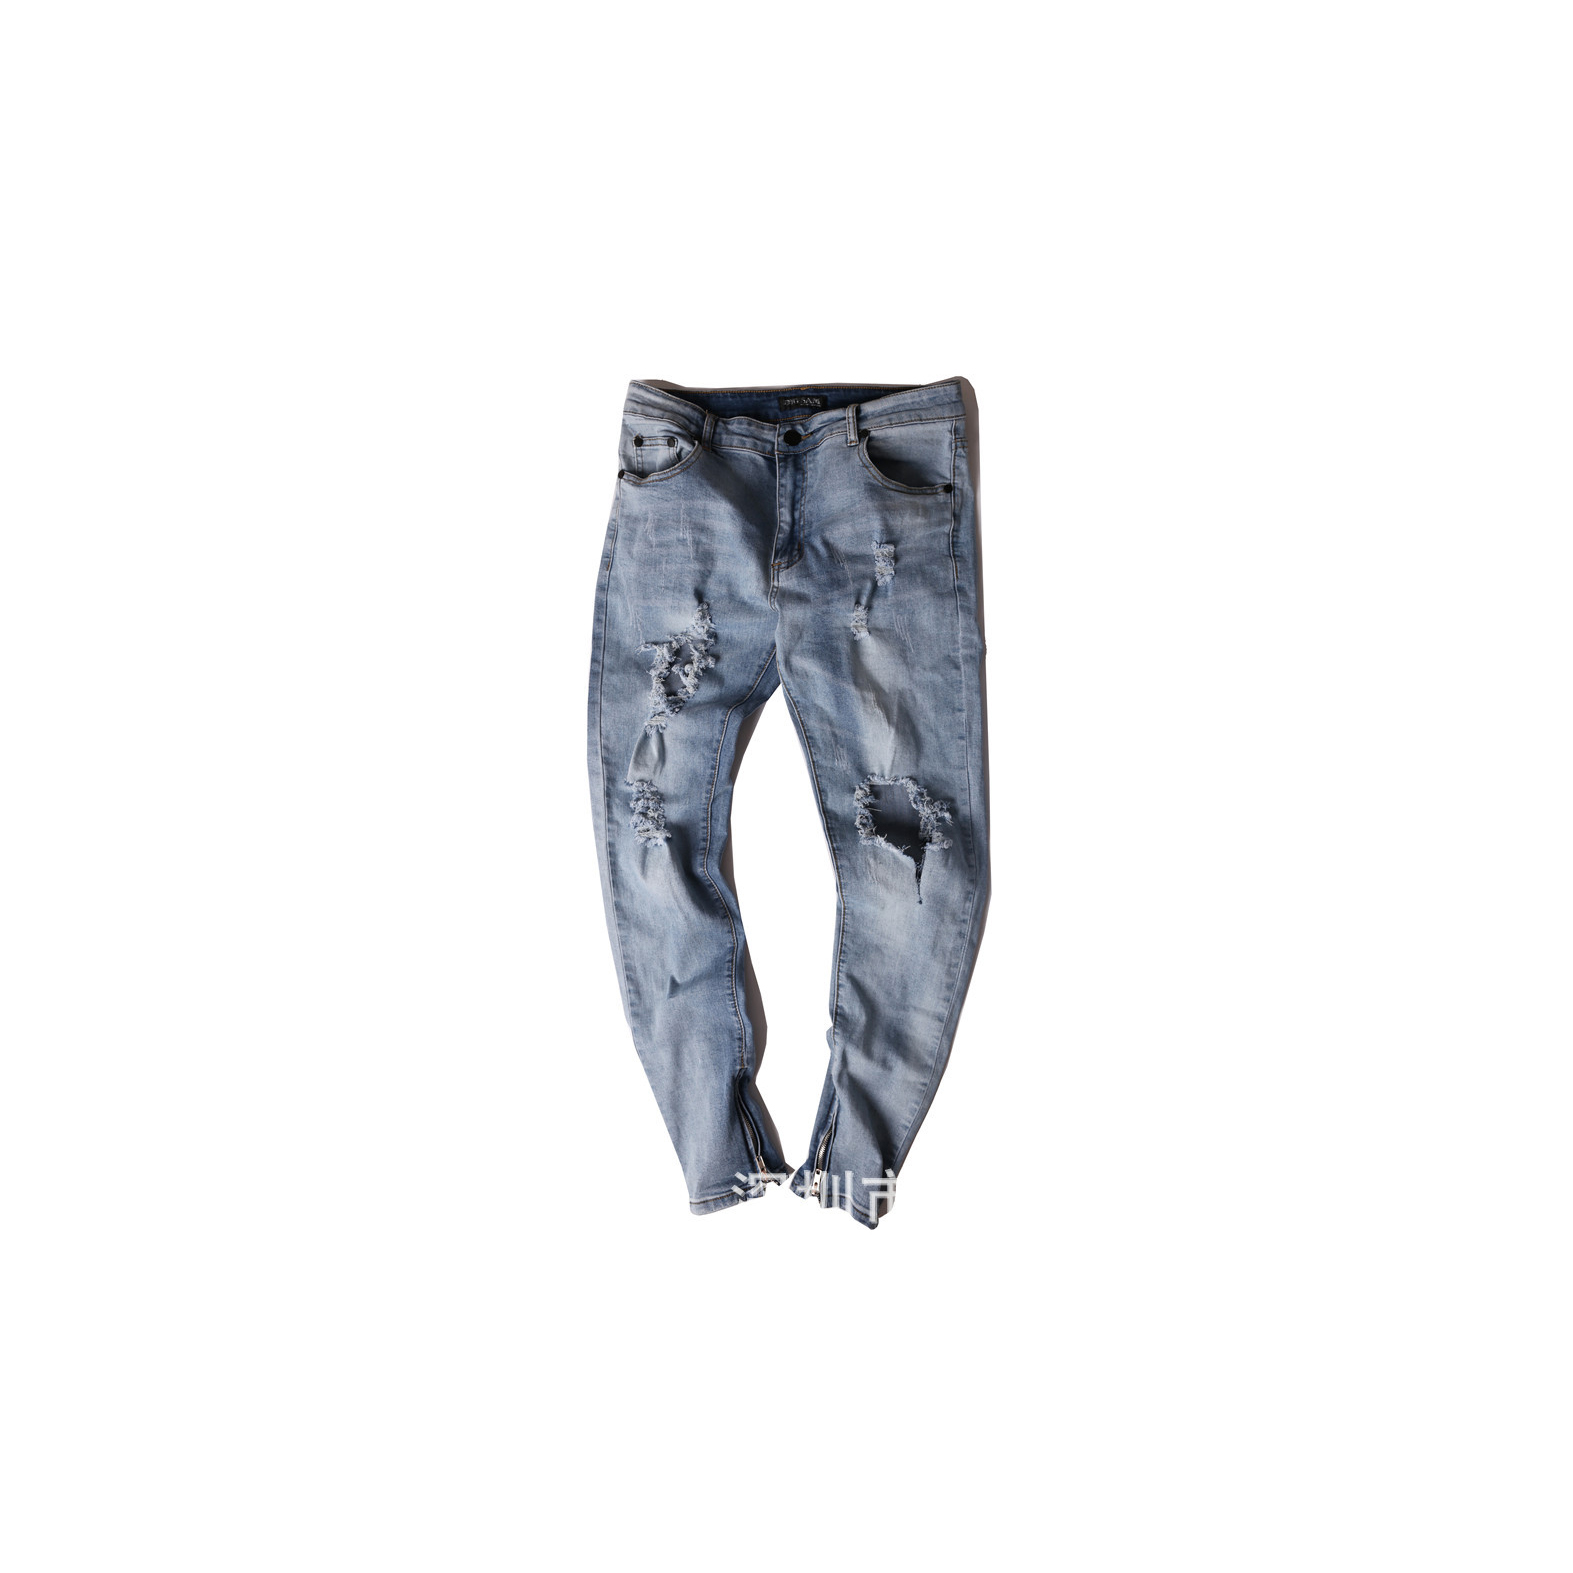 Mens Stretch Slim Pants Zippered Hole Pleated Full Length Jeans Trousers Mid Waist Cotton Hip Hop High Street Pencil Pants